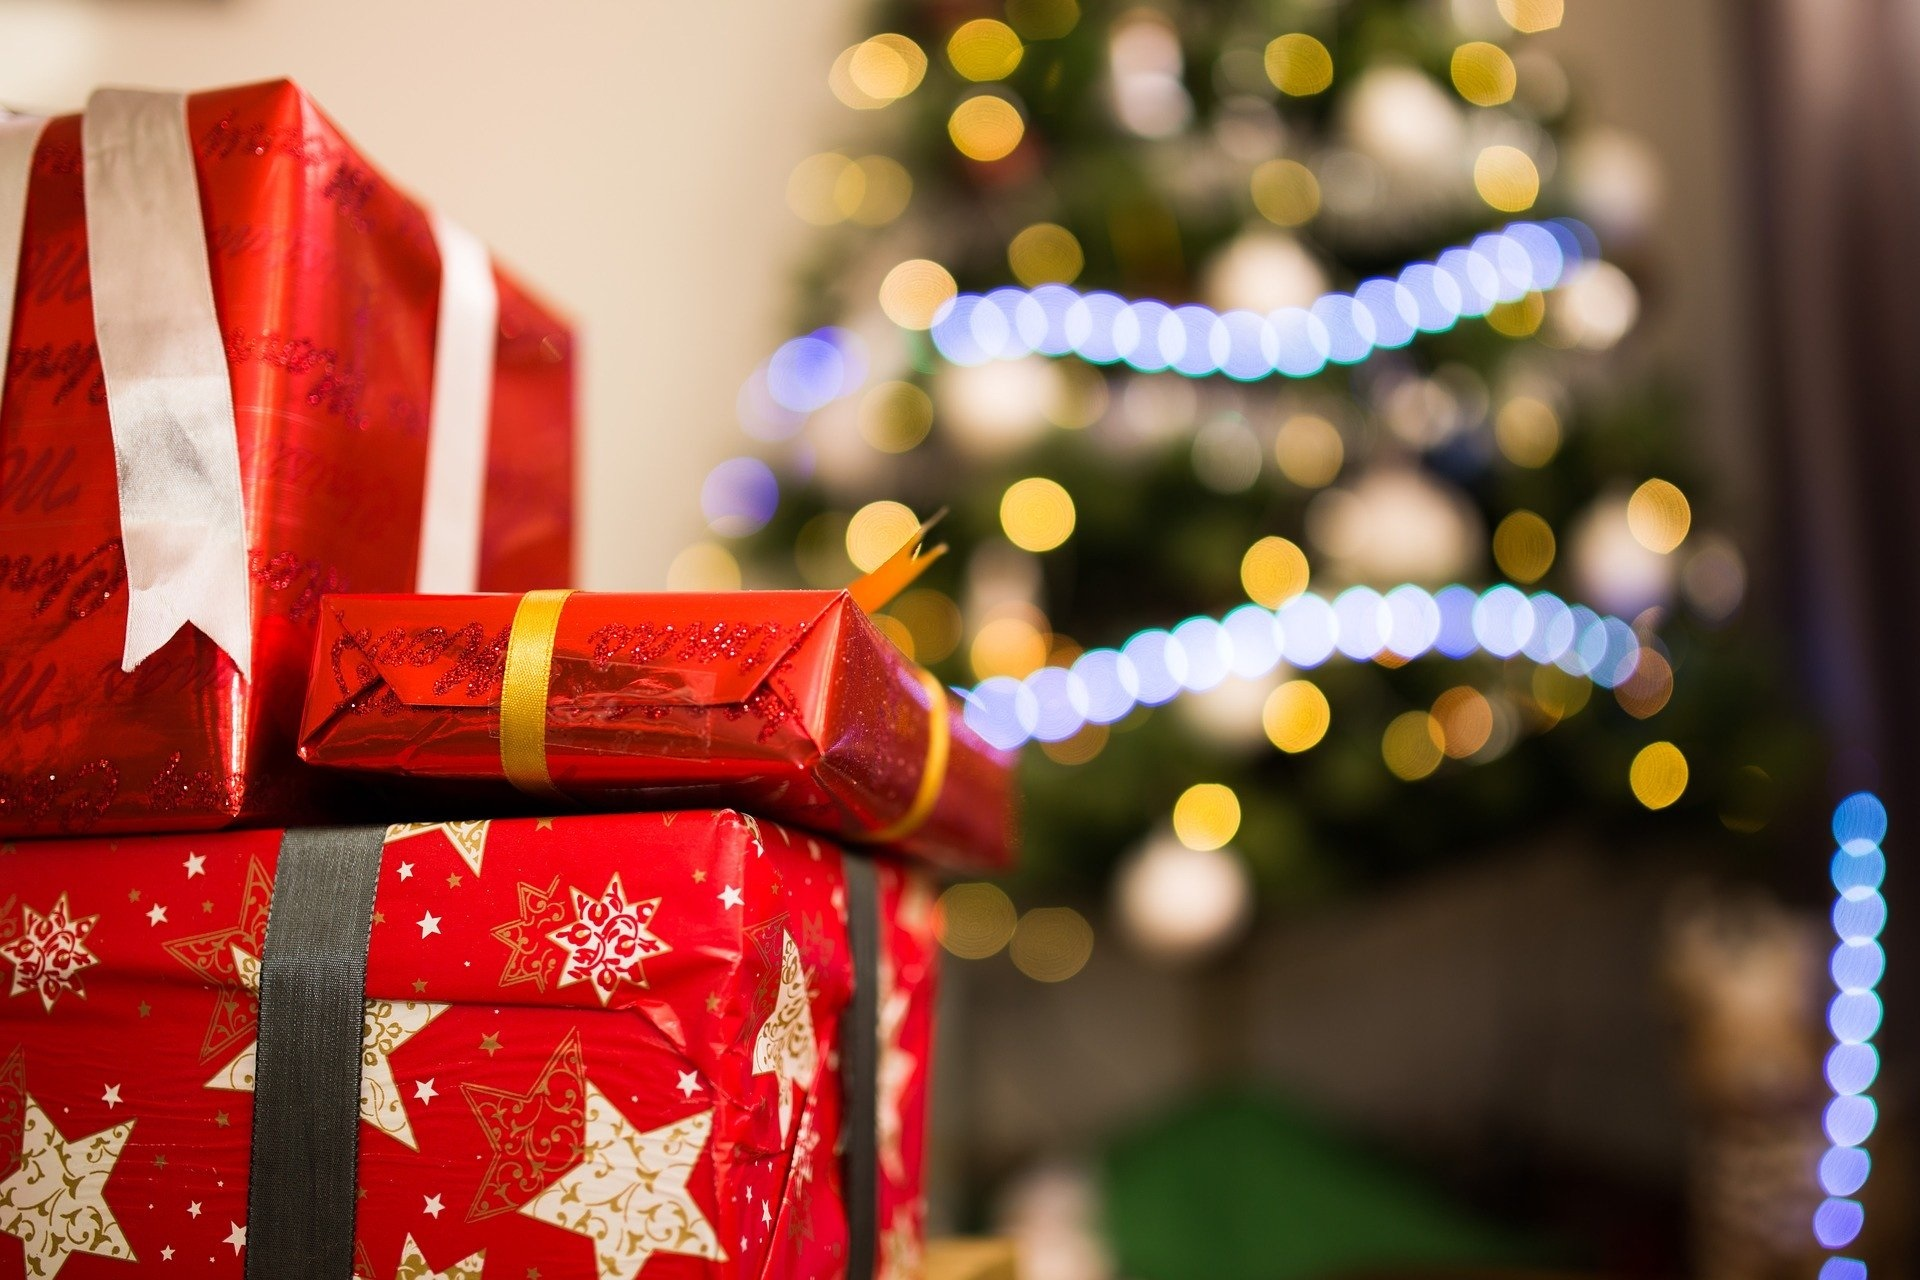 Merry Christmas from DSR Tax Claims Ltd